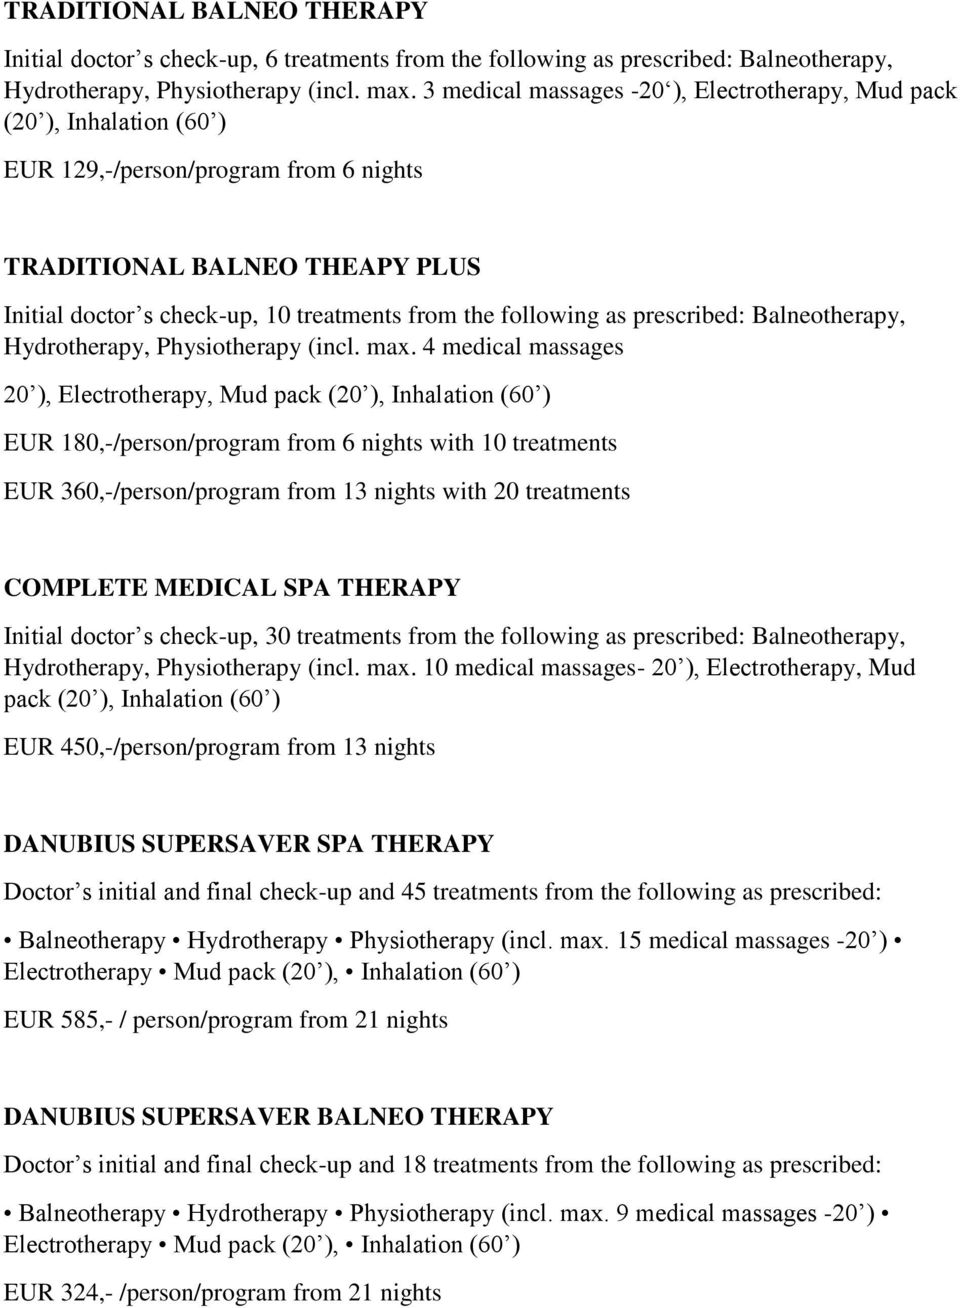 following as prescribed: Balneotherapy, Hydrotherapy, Physiotherapy (incl. max.